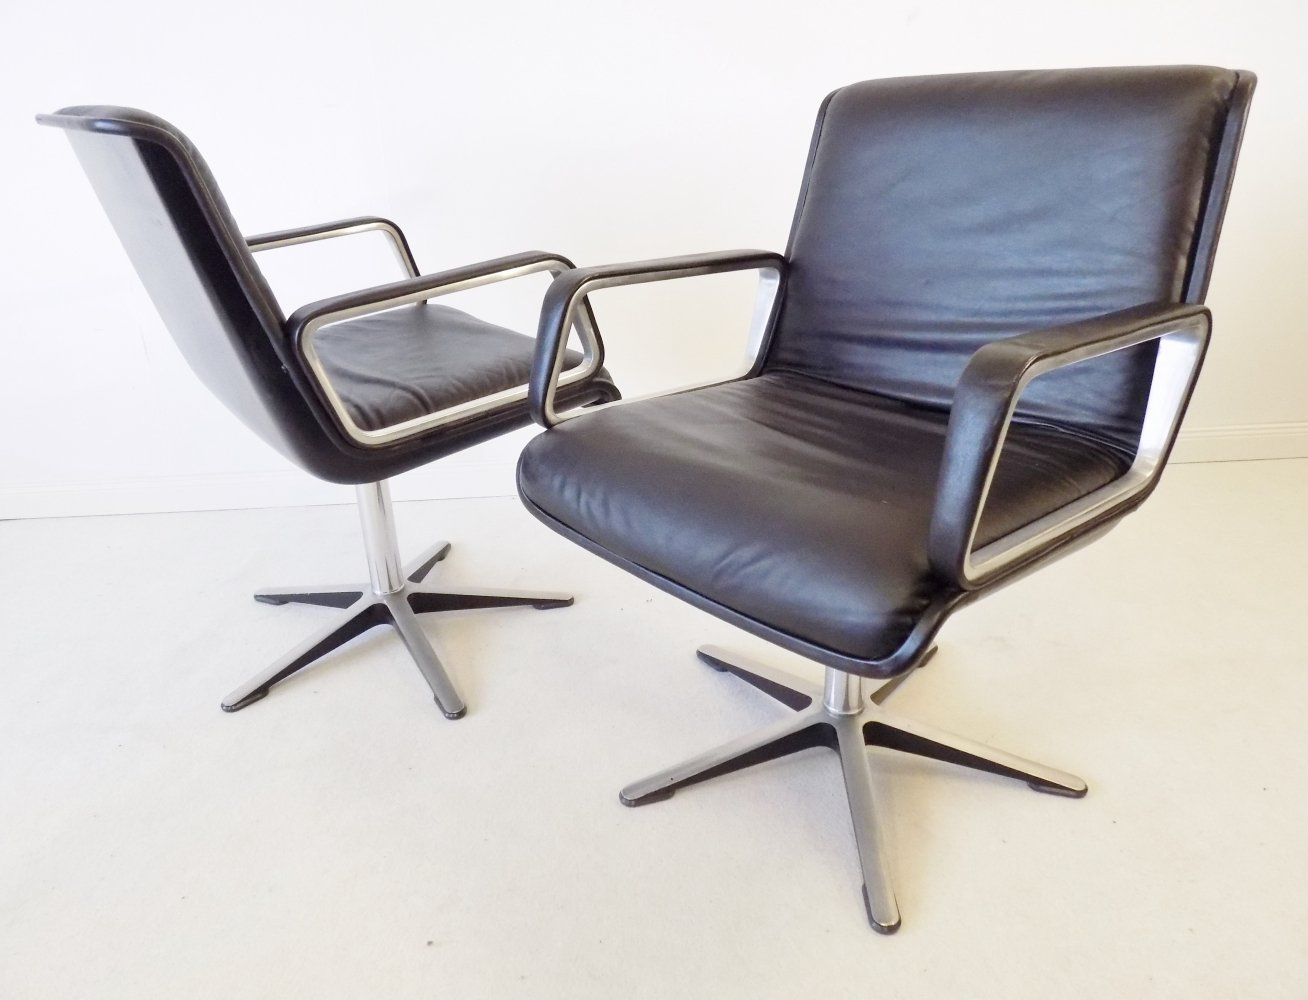 Wilkhahn Delta 2000 Pair of black leather lounge chairs by Delta Design